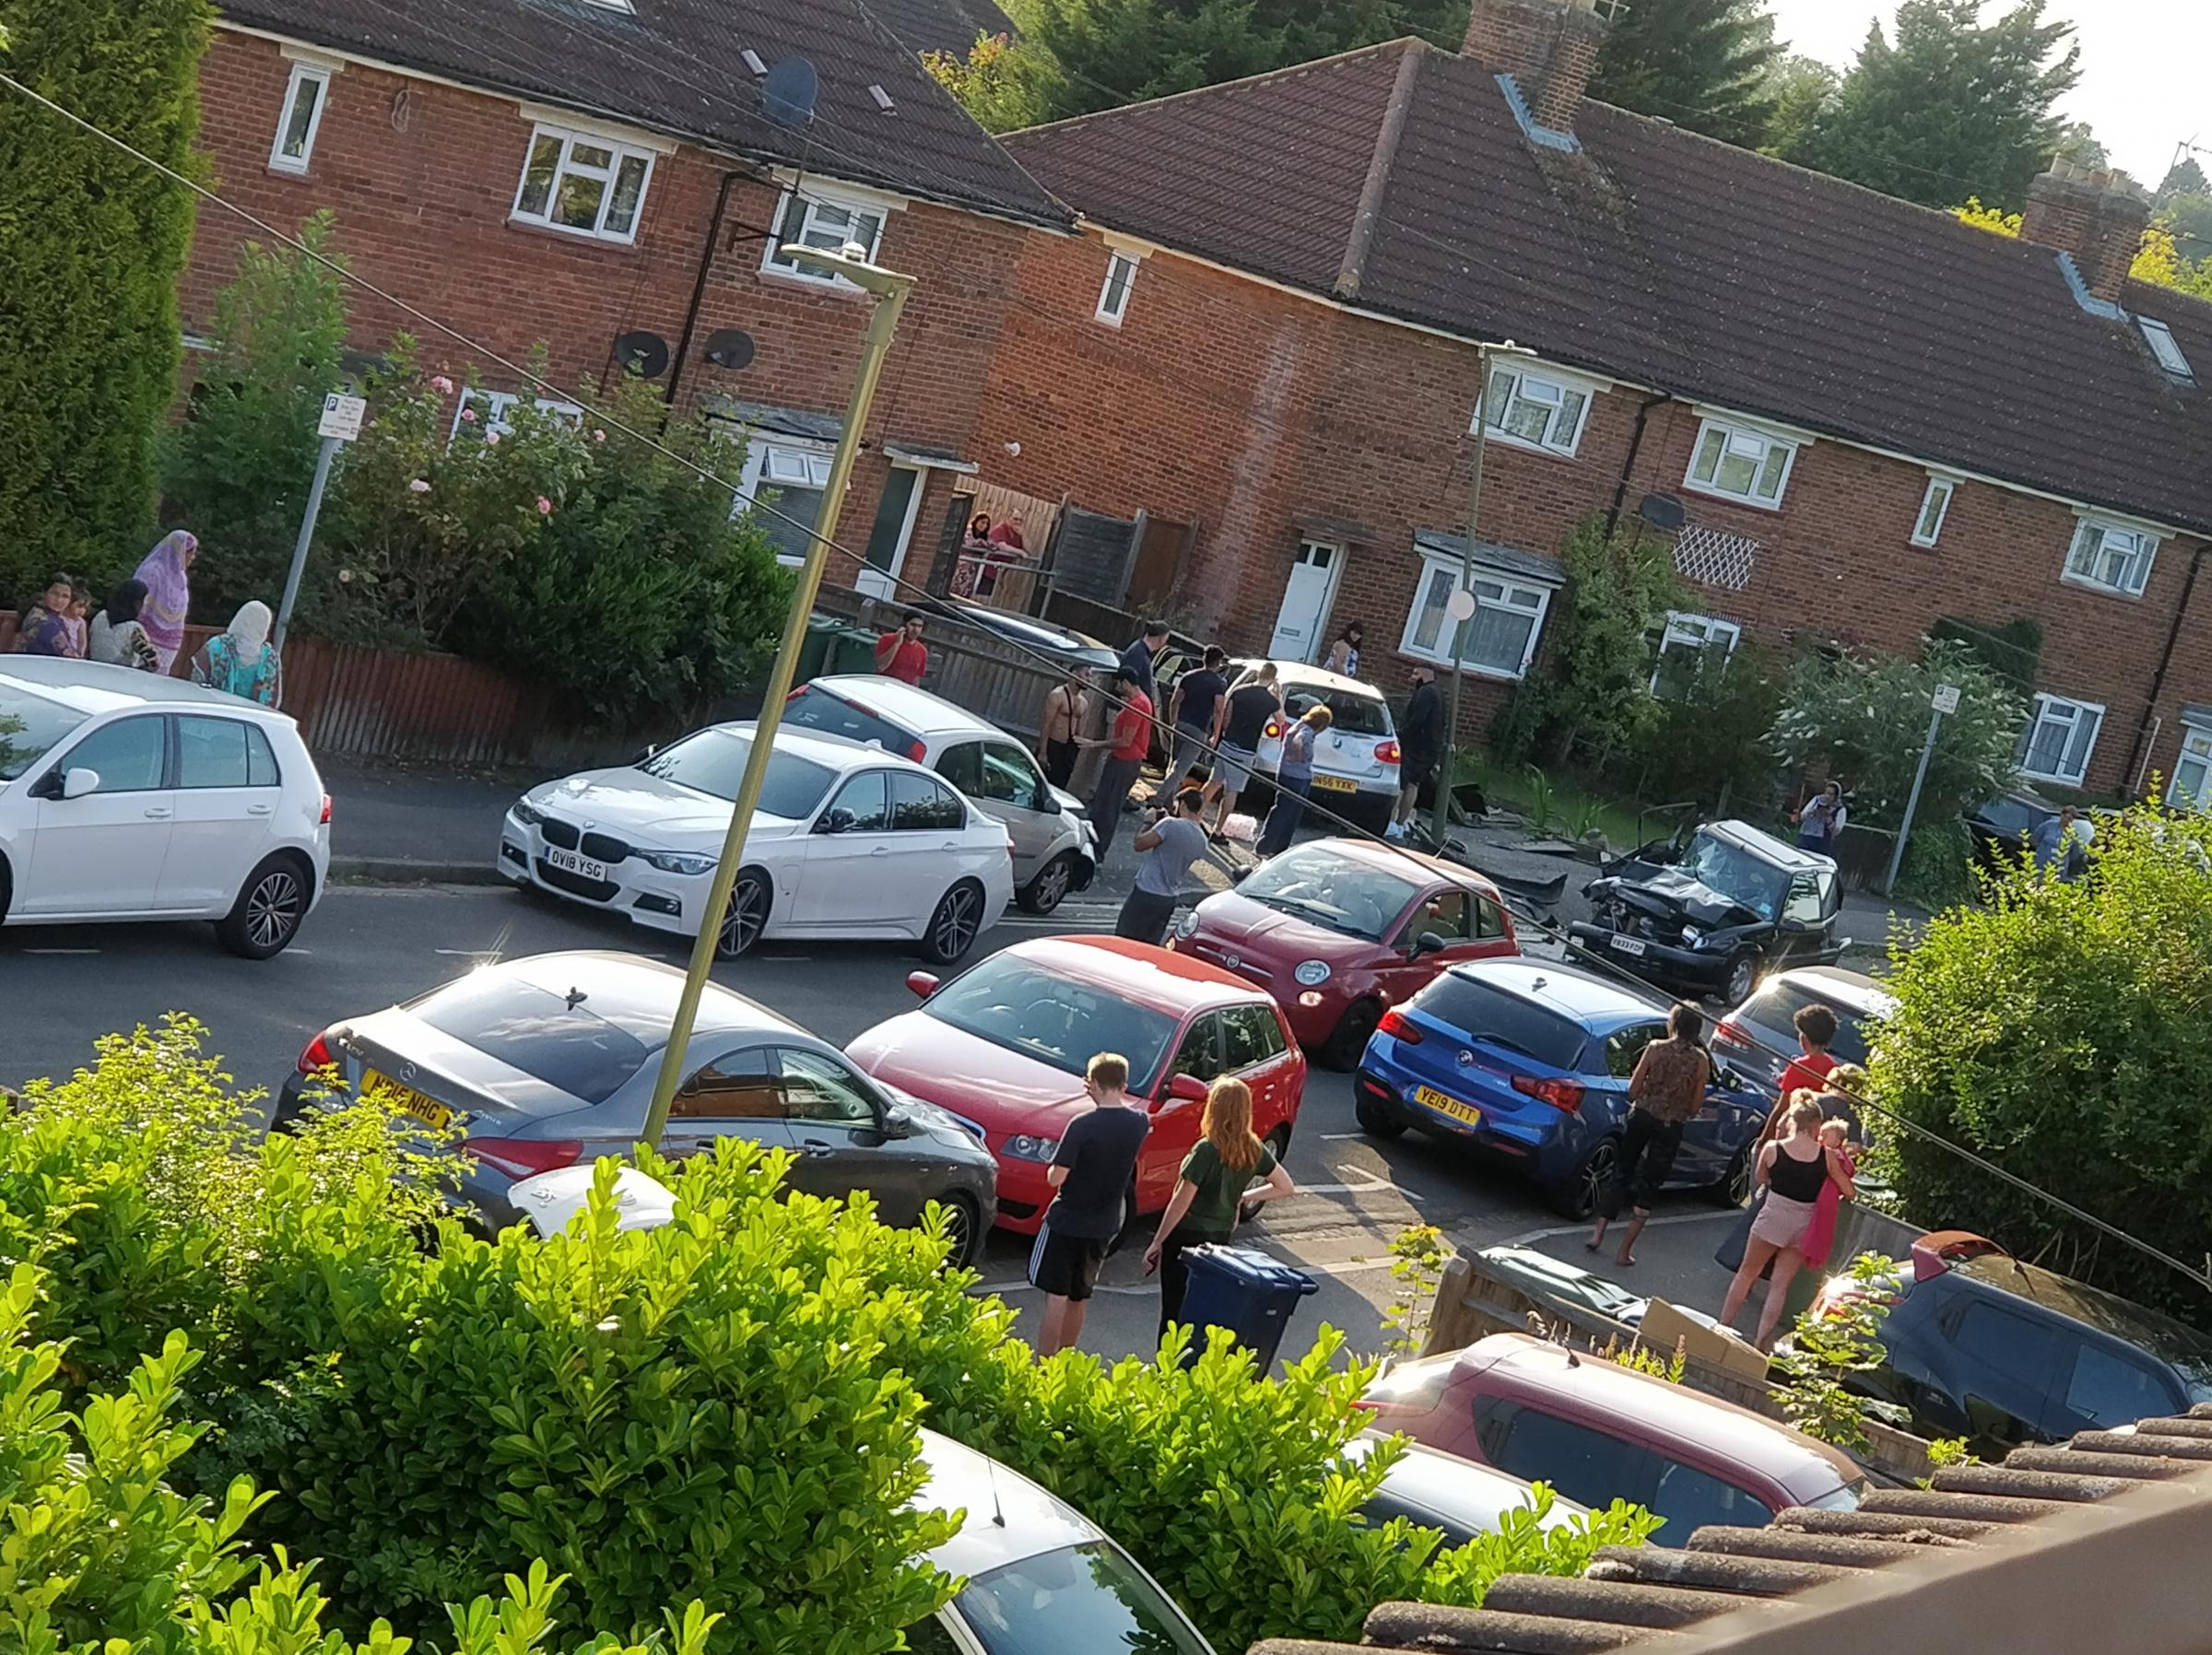 Valentia Road crash: Car was going over 70mph, say neighbours